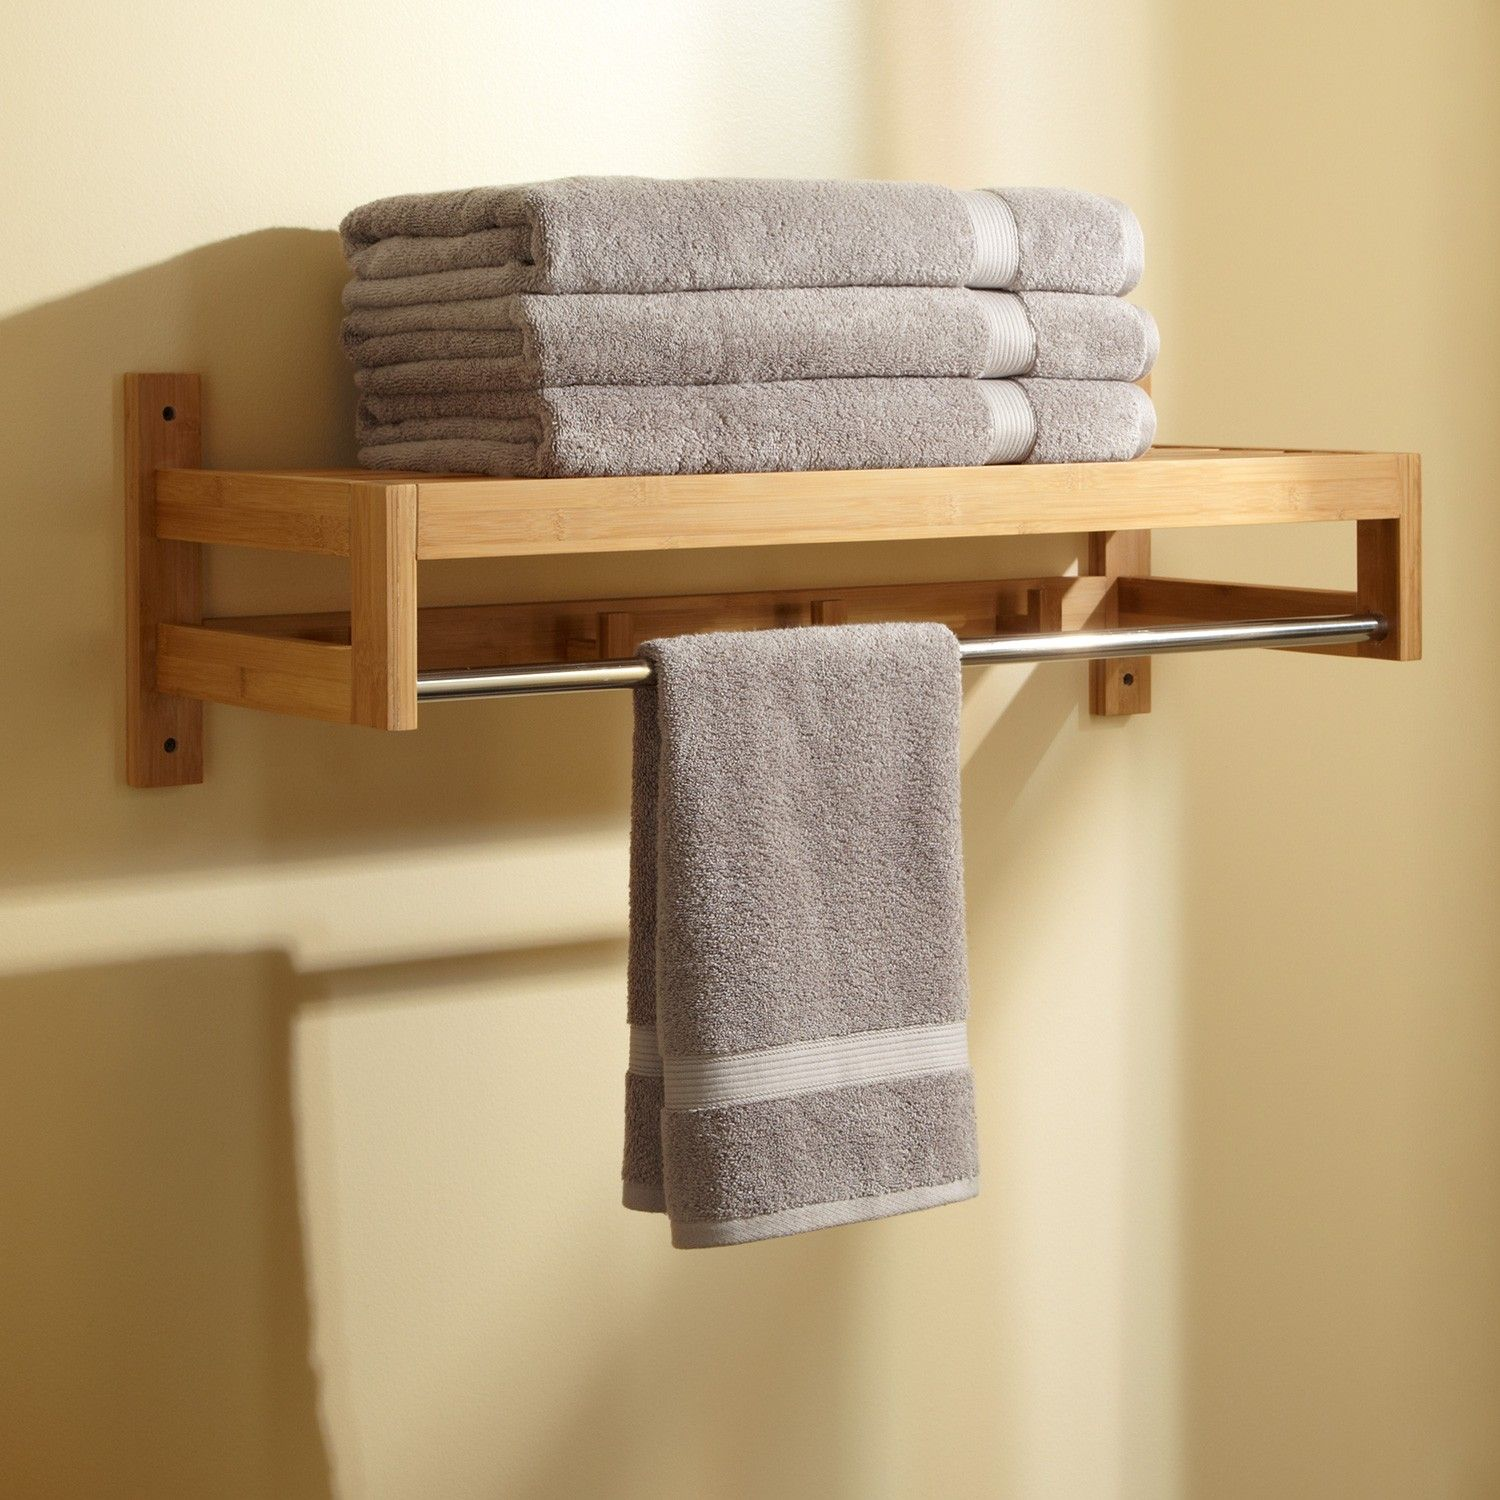 Pathein Bamboo Towel Rack With Hooks Bathroom towel hooks